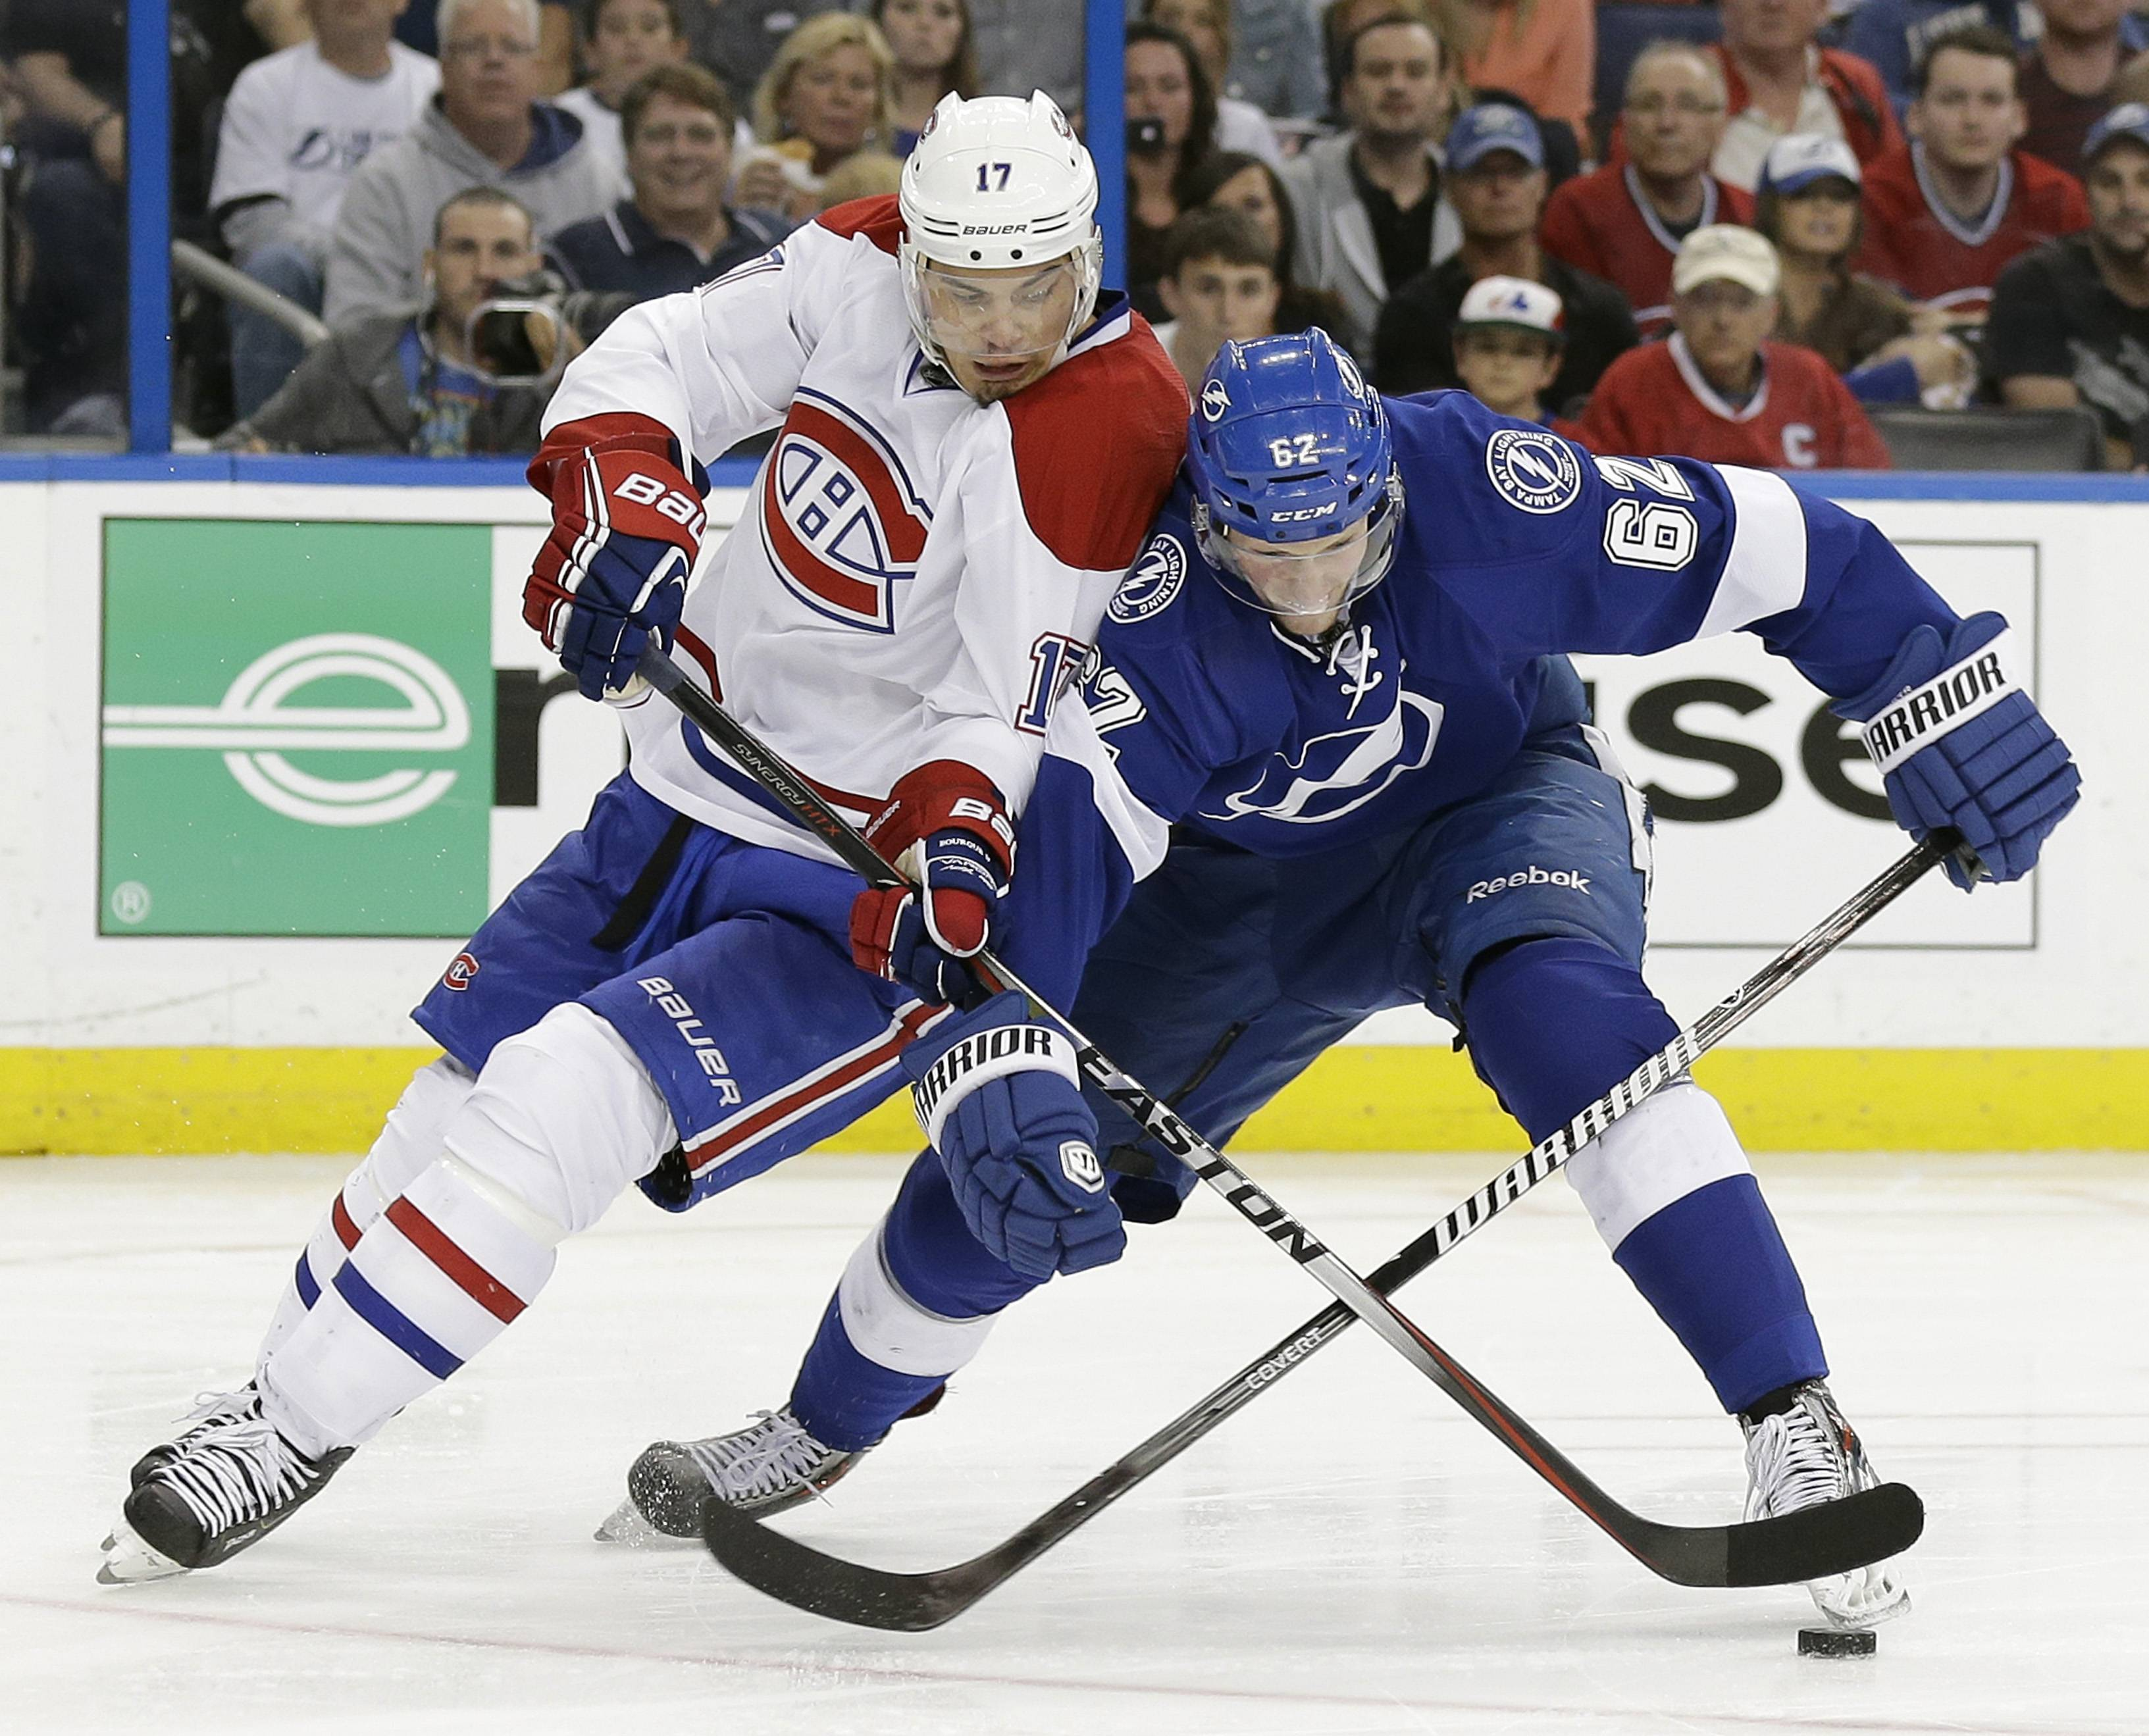 Montreal Canadiens left wing Rene Bourque (17) battles Tampa Bay Lightning defenseman Andrej Sustr (62), of the Czech Republic, for the puck during the third period of Game 2 of a first-round NHL hockey playoff series on Friday, April 18, 2014, in Tampa, Fla. (AP Photo/Chris O'Meara)